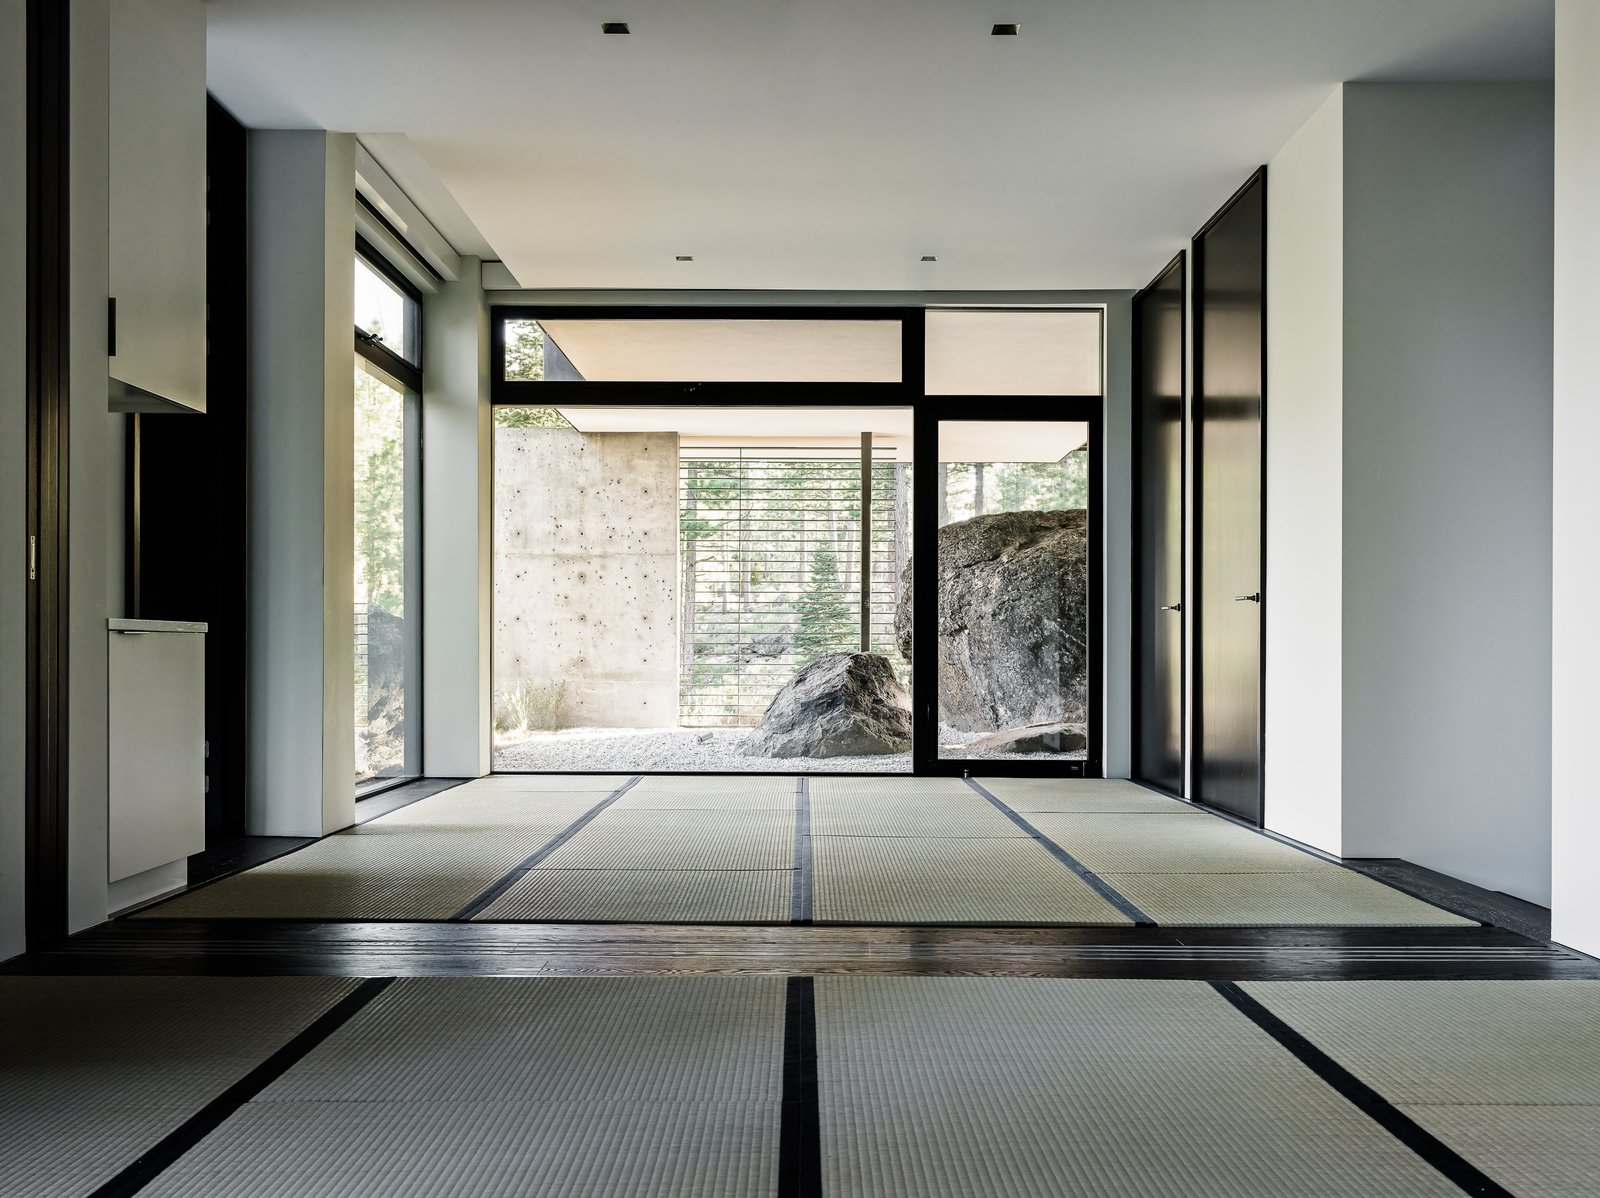 Living Room, Recessed Lighting, and Dark Hardwood Floor A sense of Japanese minimalist design permeates the home. Tatami mats are now used in a space that leads out to a very zen-like rock garden.     Photo 10 of 18 in This Concrete Abode Stretches Over Giant Boulders